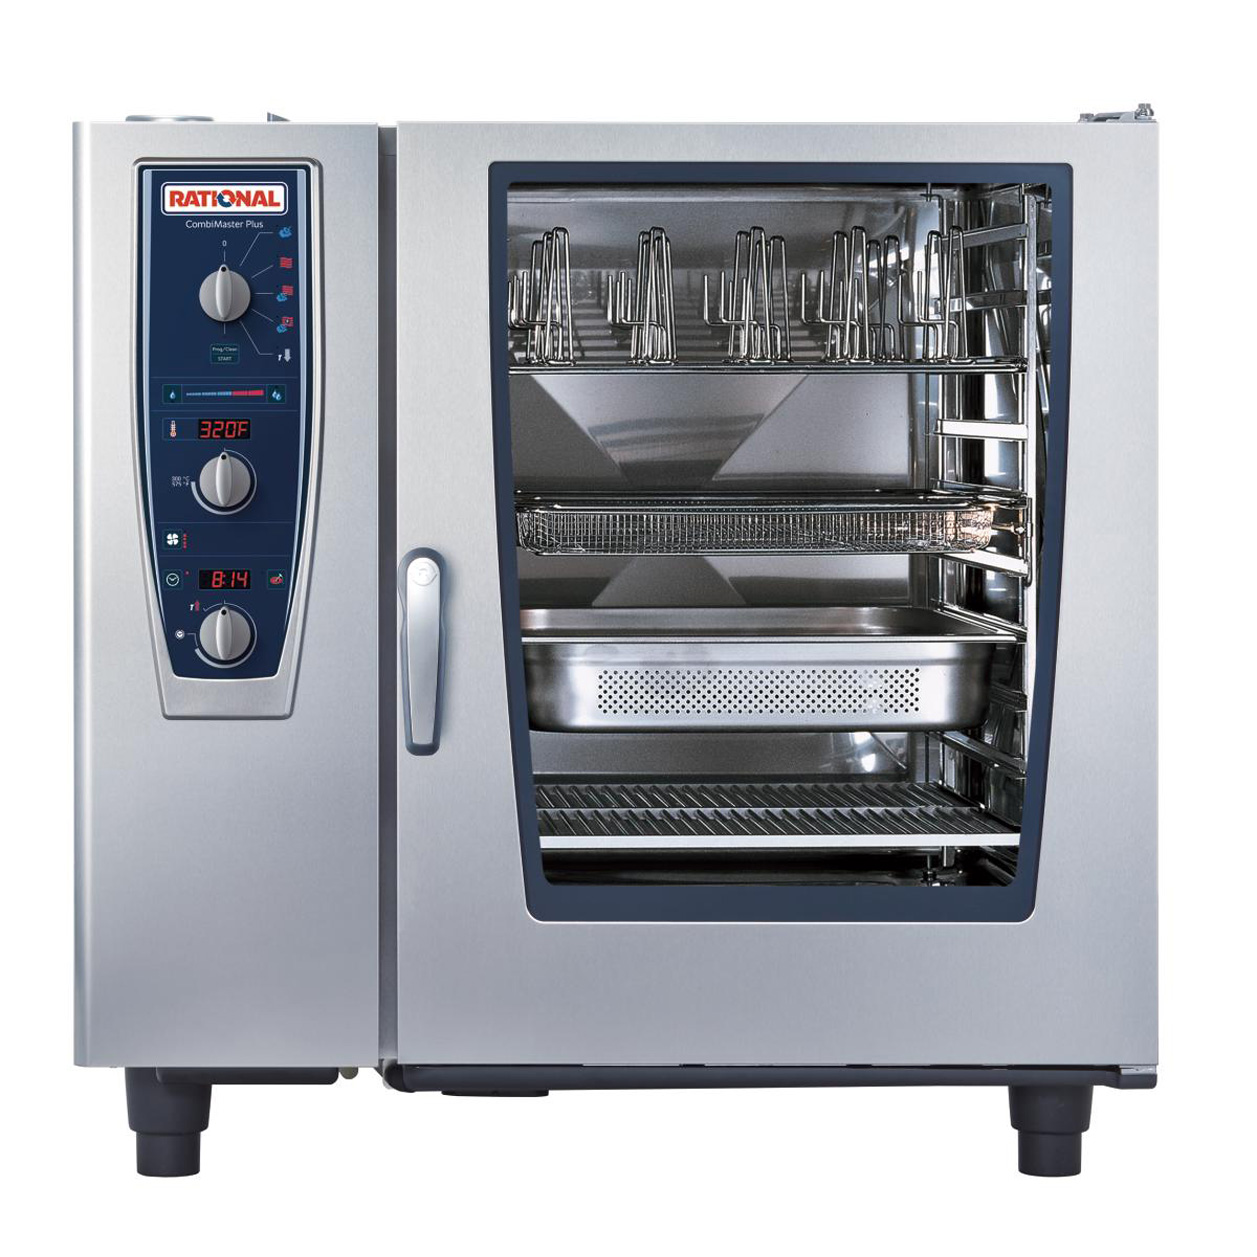 RATIONAL B129206.19D202 combi oven, gas